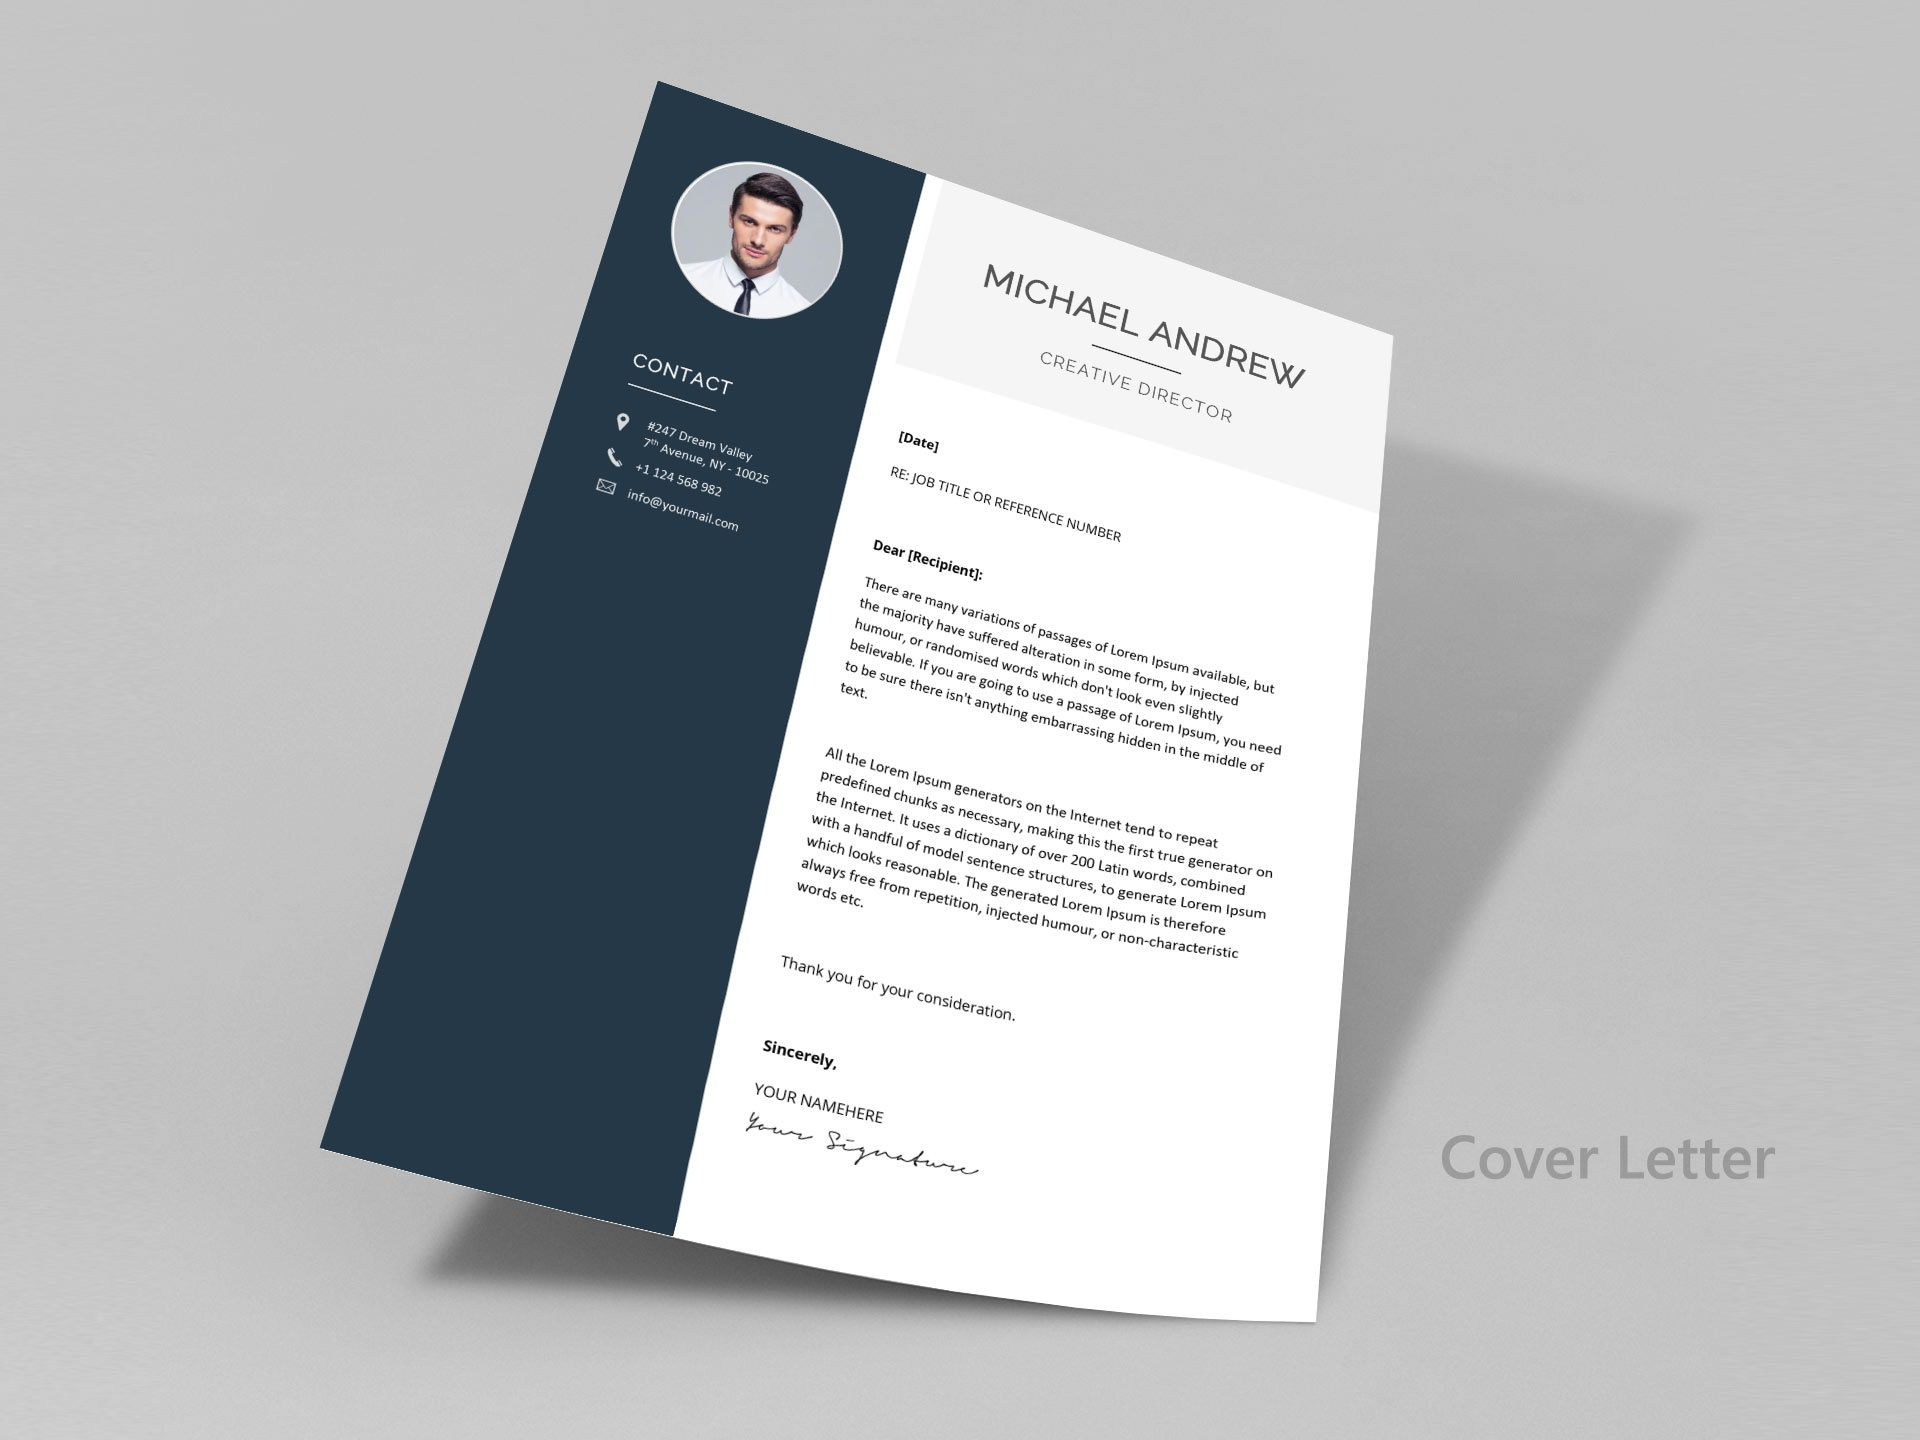 007 Awful Modern Cv Template Word Free Download 2019 High Definition Full